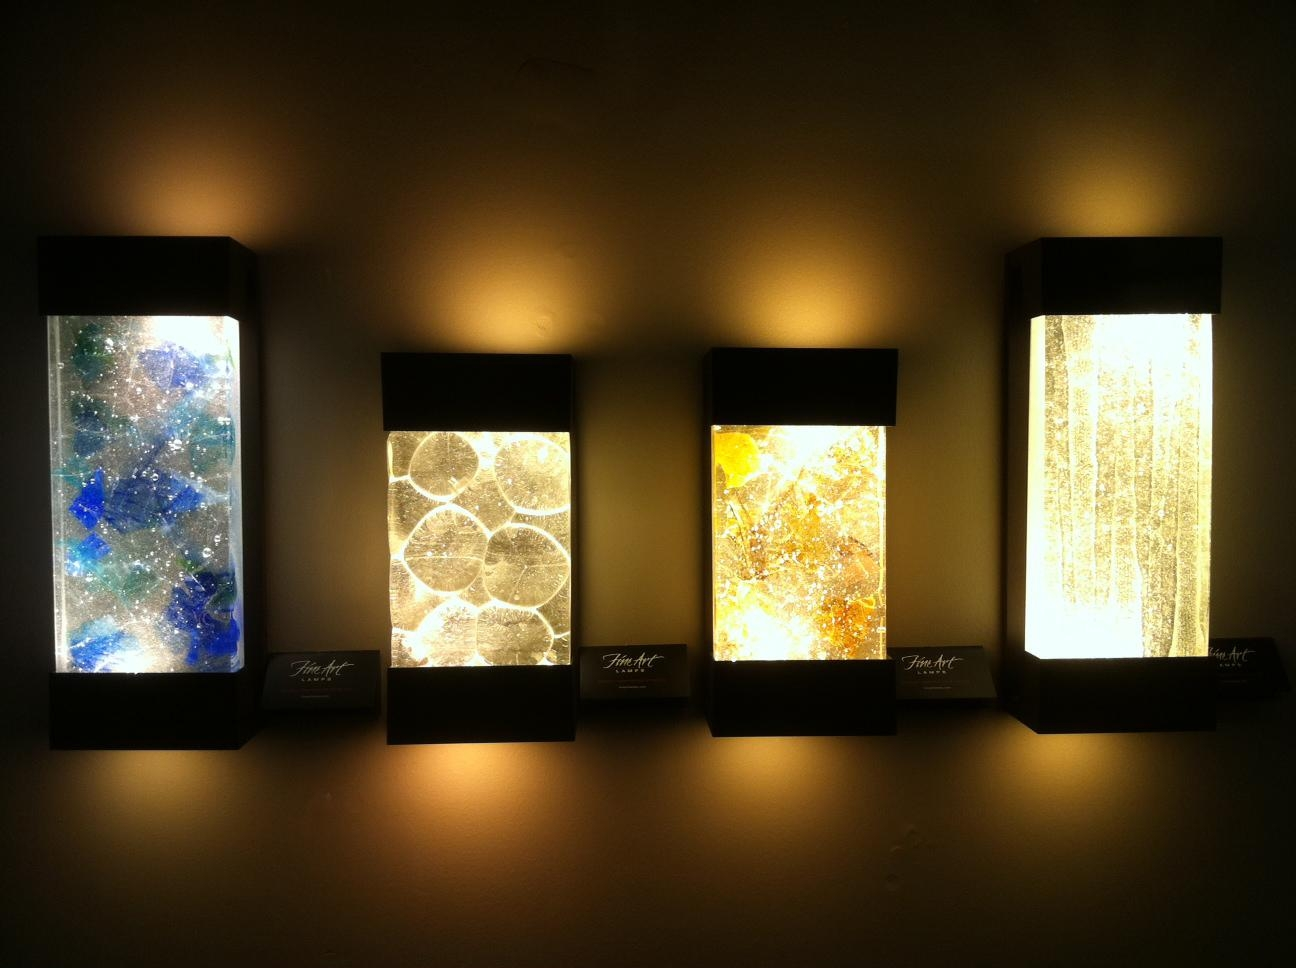 Wall Art With Led Lights – The Art Of The Future | Warisan Lighting Intended For Wall Art Lighting (Image 20 of 20)